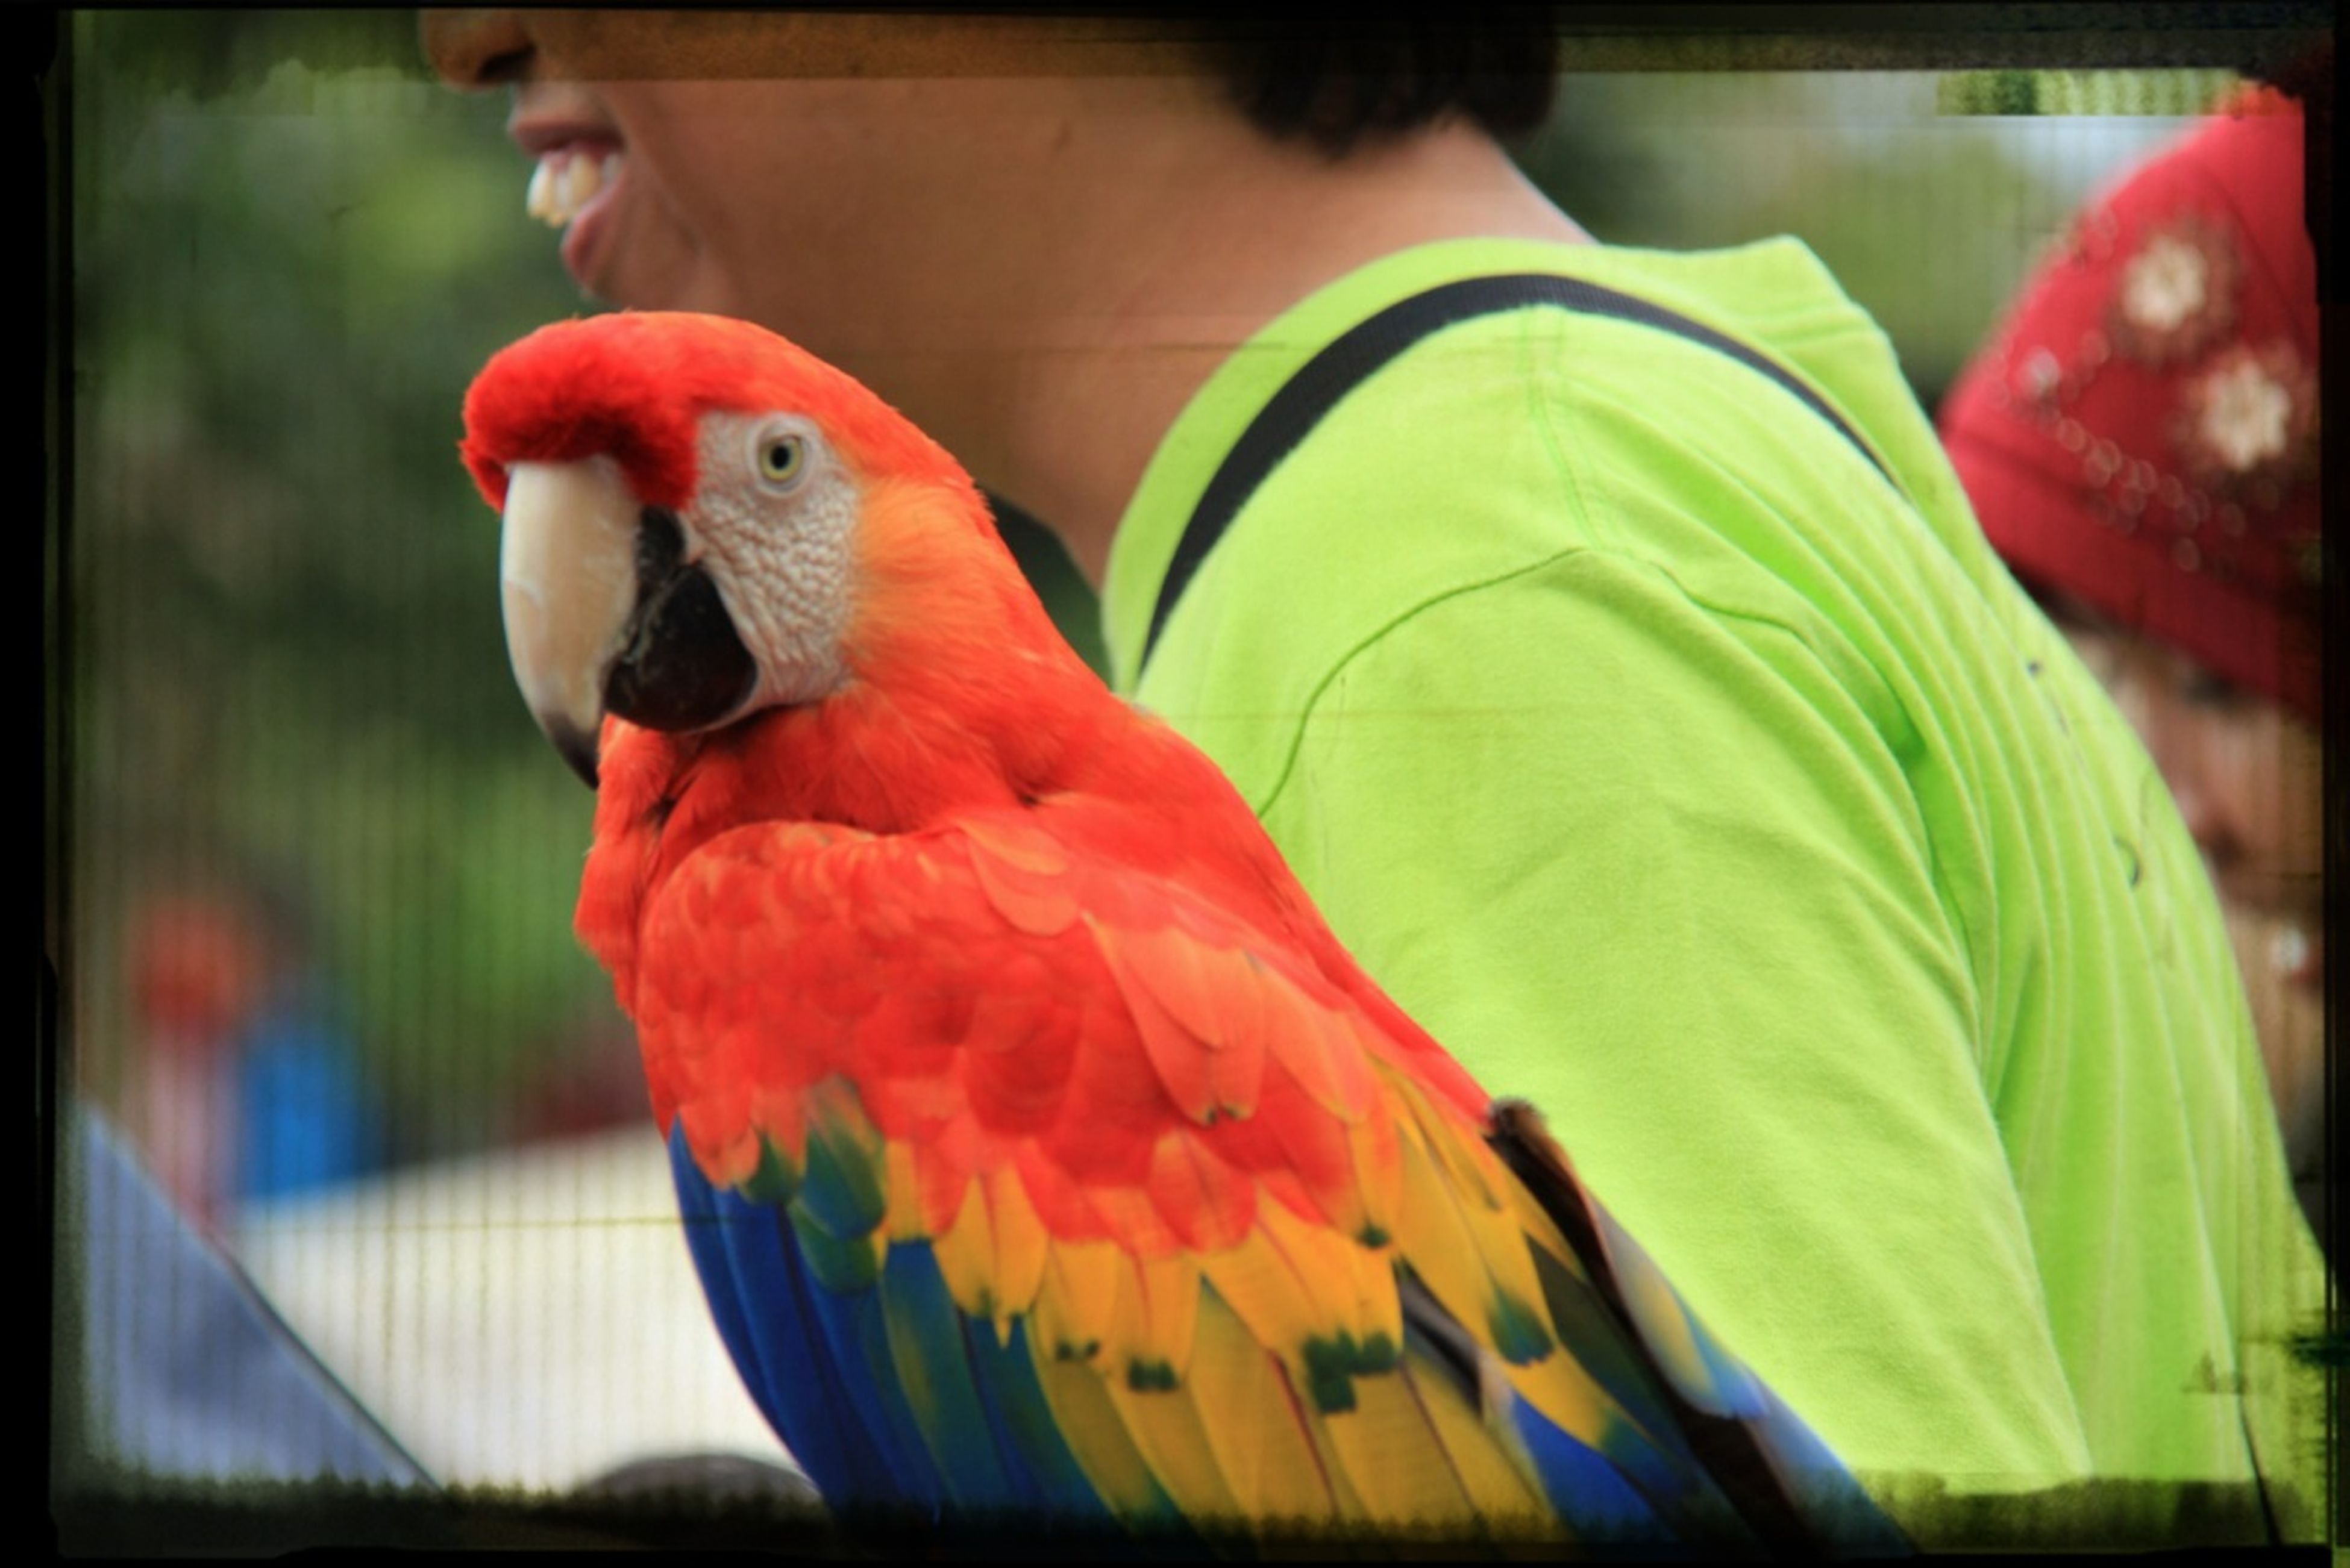 bird, animal themes, parrot, one animal, beak, animals in the wild, close-up, wildlife, focus on foreground, indoors, red, cage, multi colored, animal head, birdcage, perching, transfer print, auto post production filter, animals in captivity, chicken - bird